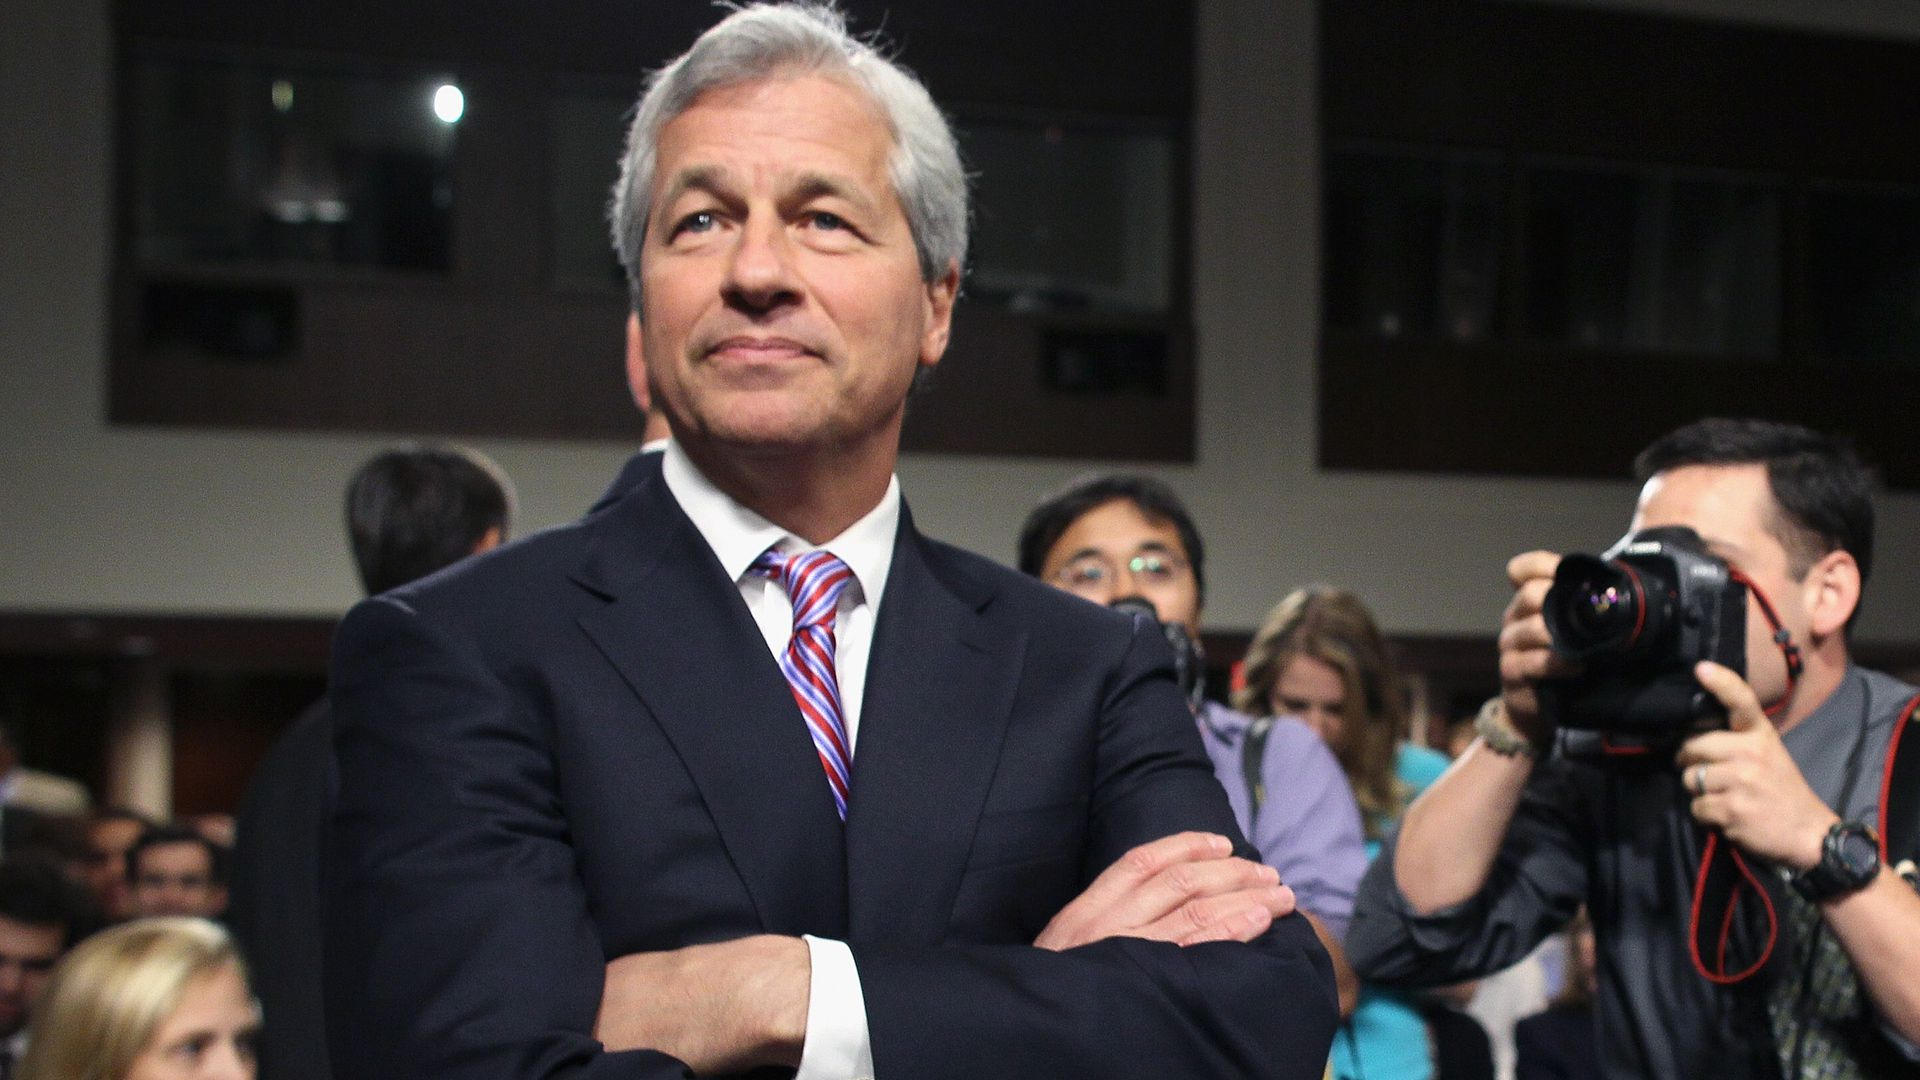 JP Morgan CEO Jamie Dimon poses with his arms folded.